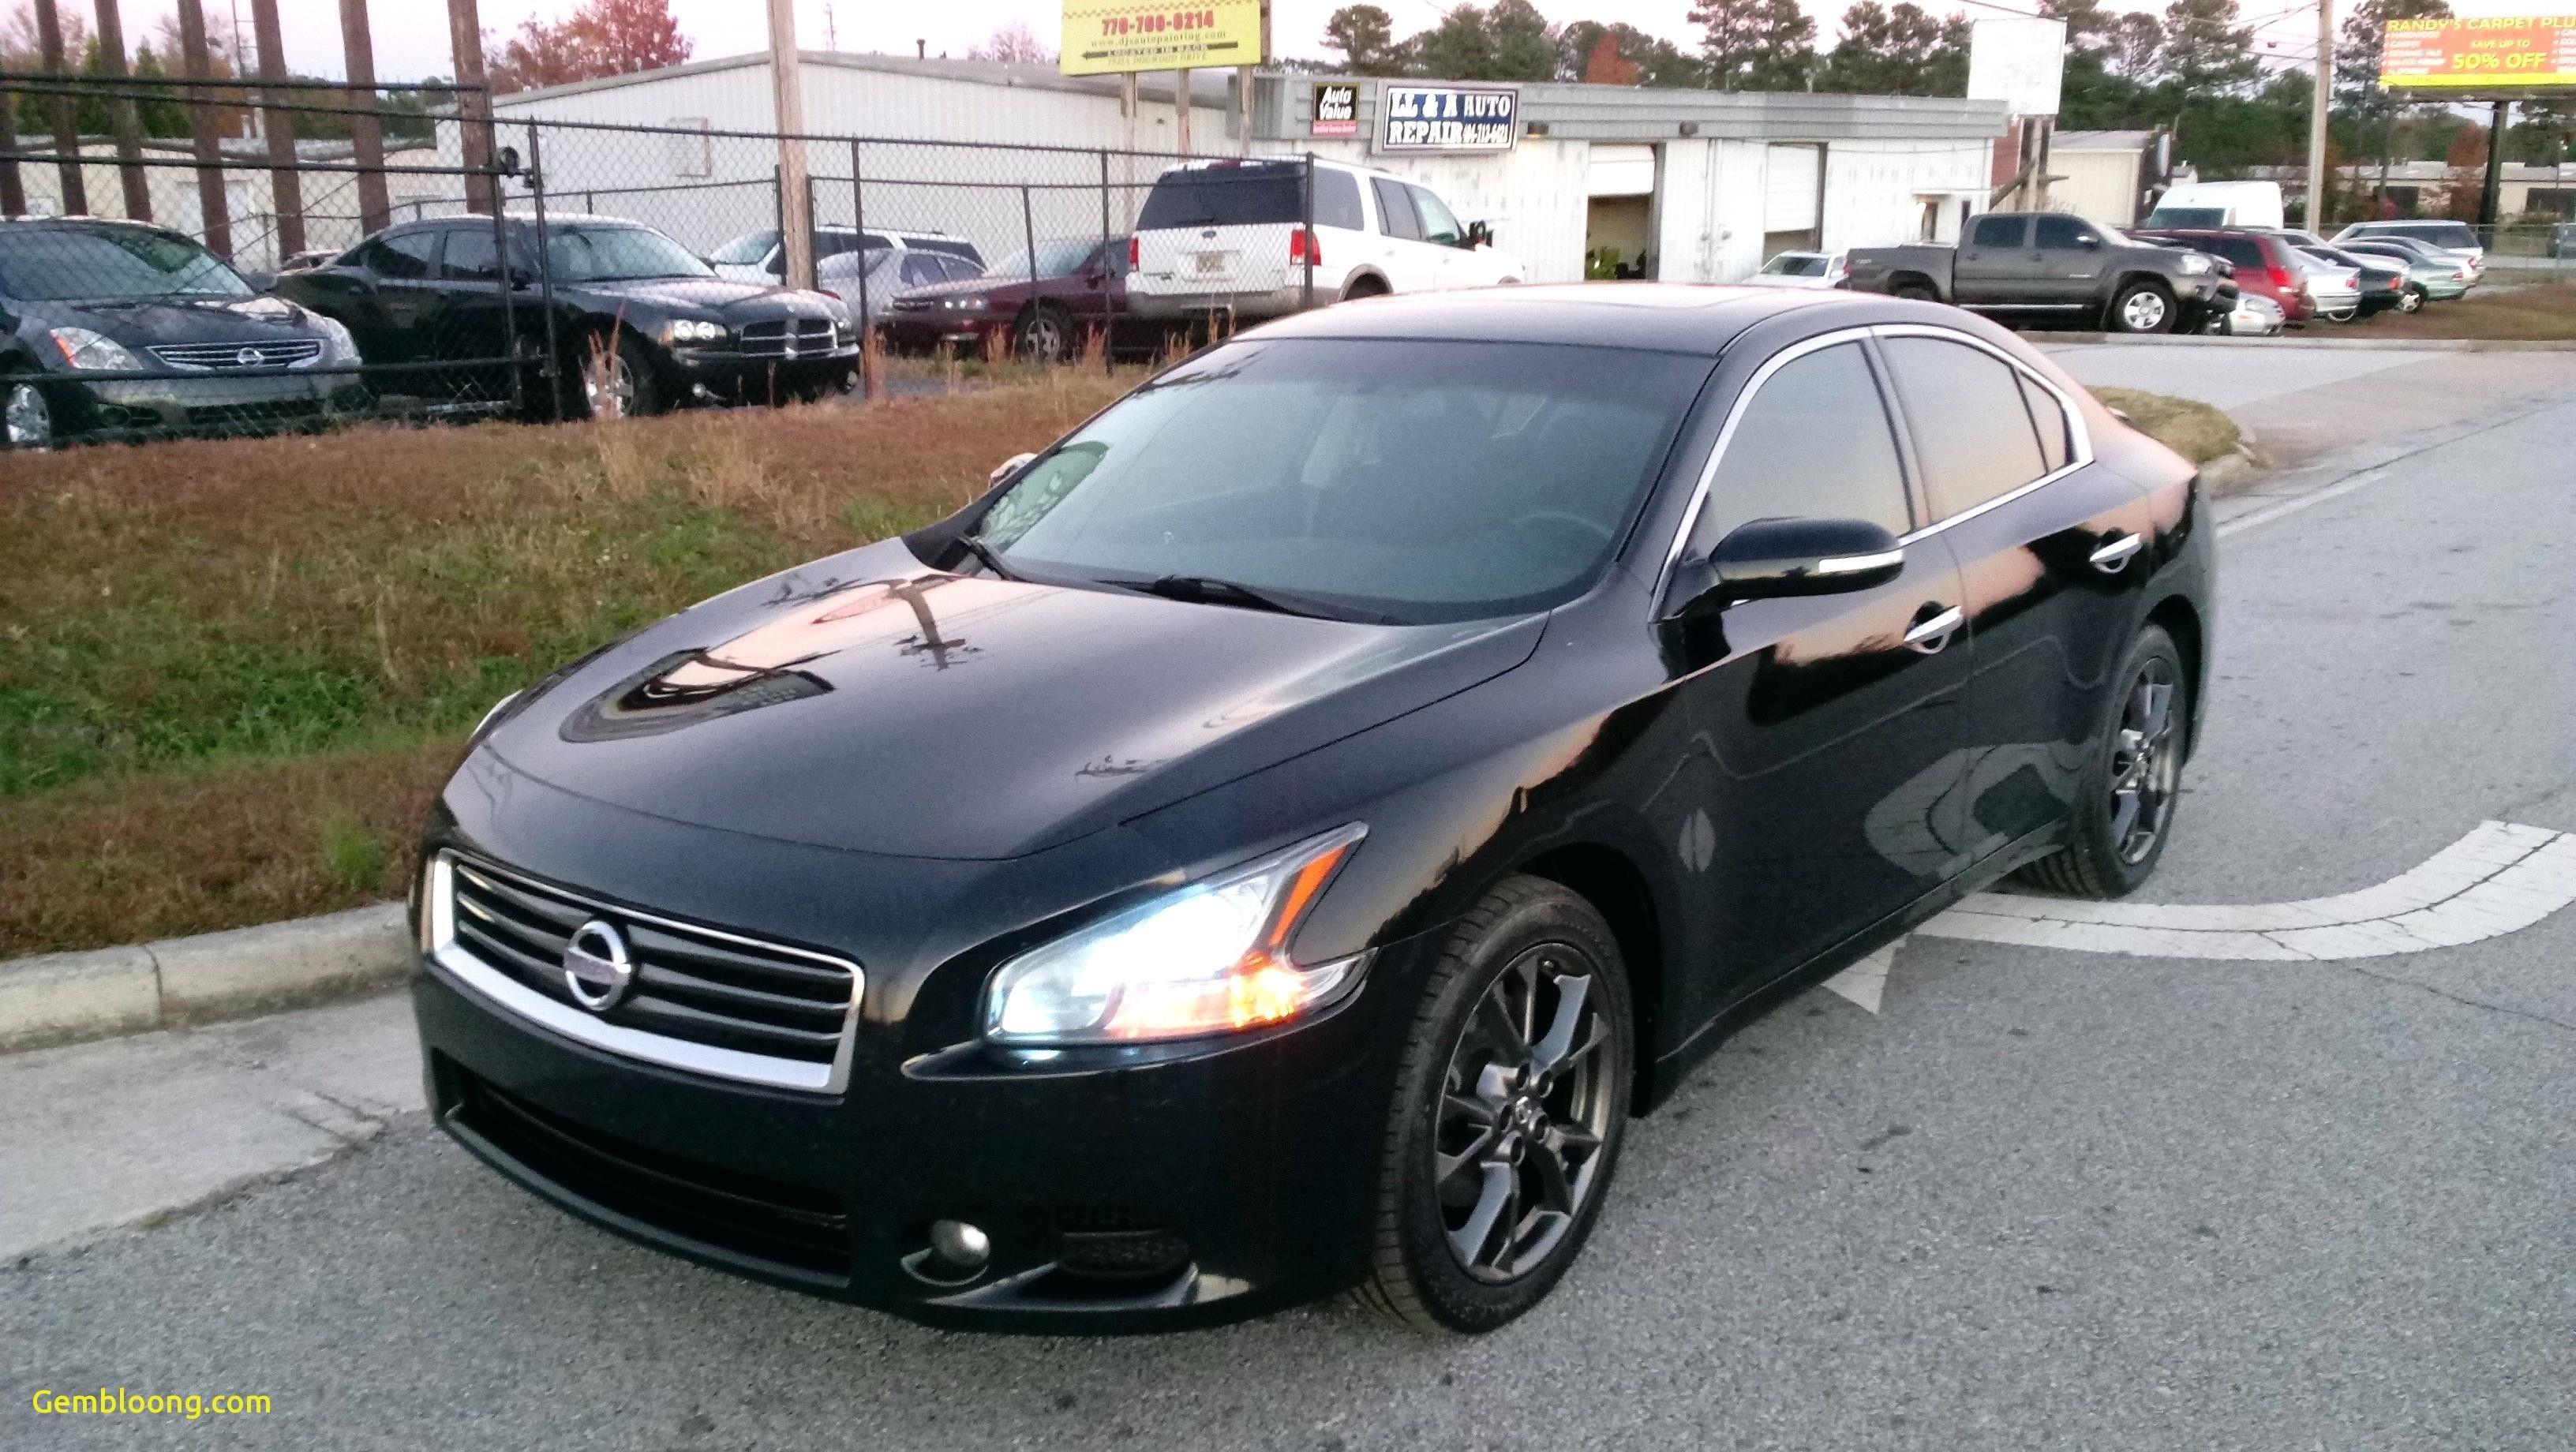 Awesome Cheap Cars for Sale Near Me by Owner